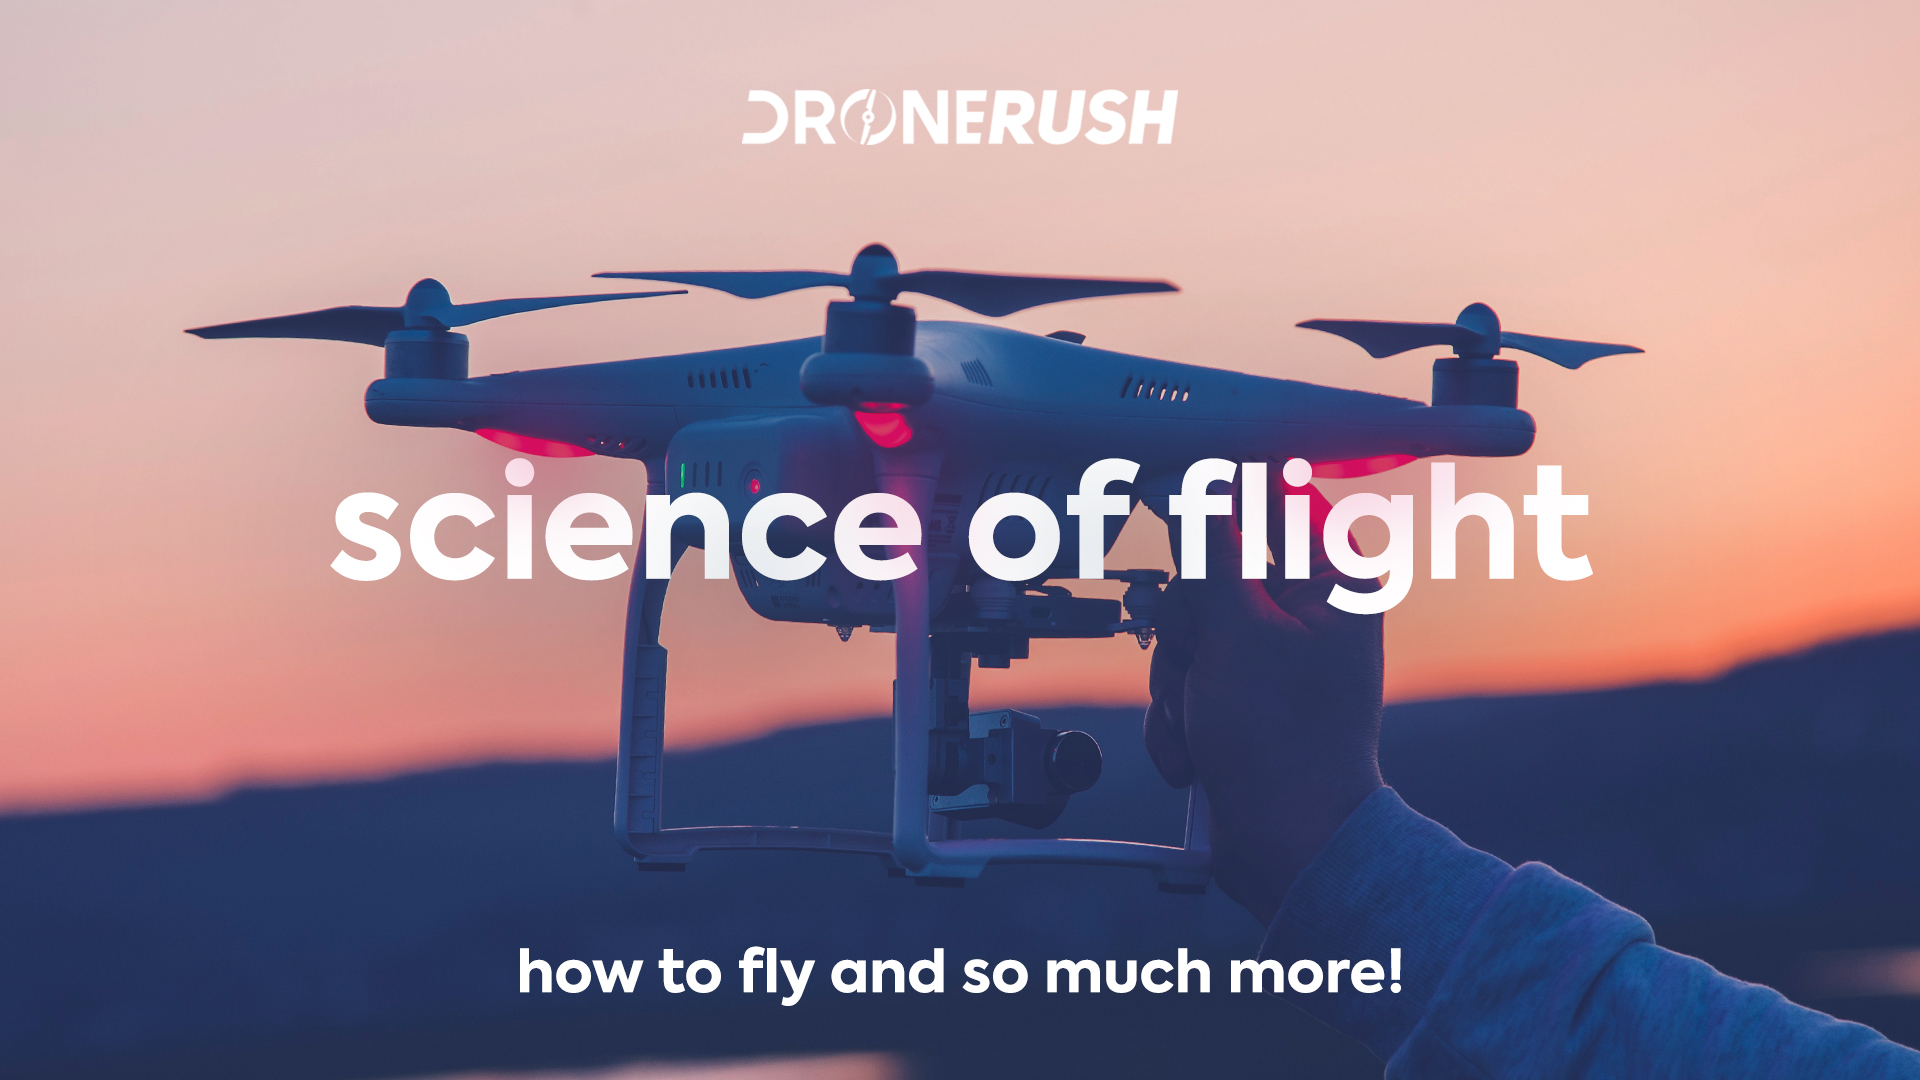 Drone Rush Science of Flight series banner